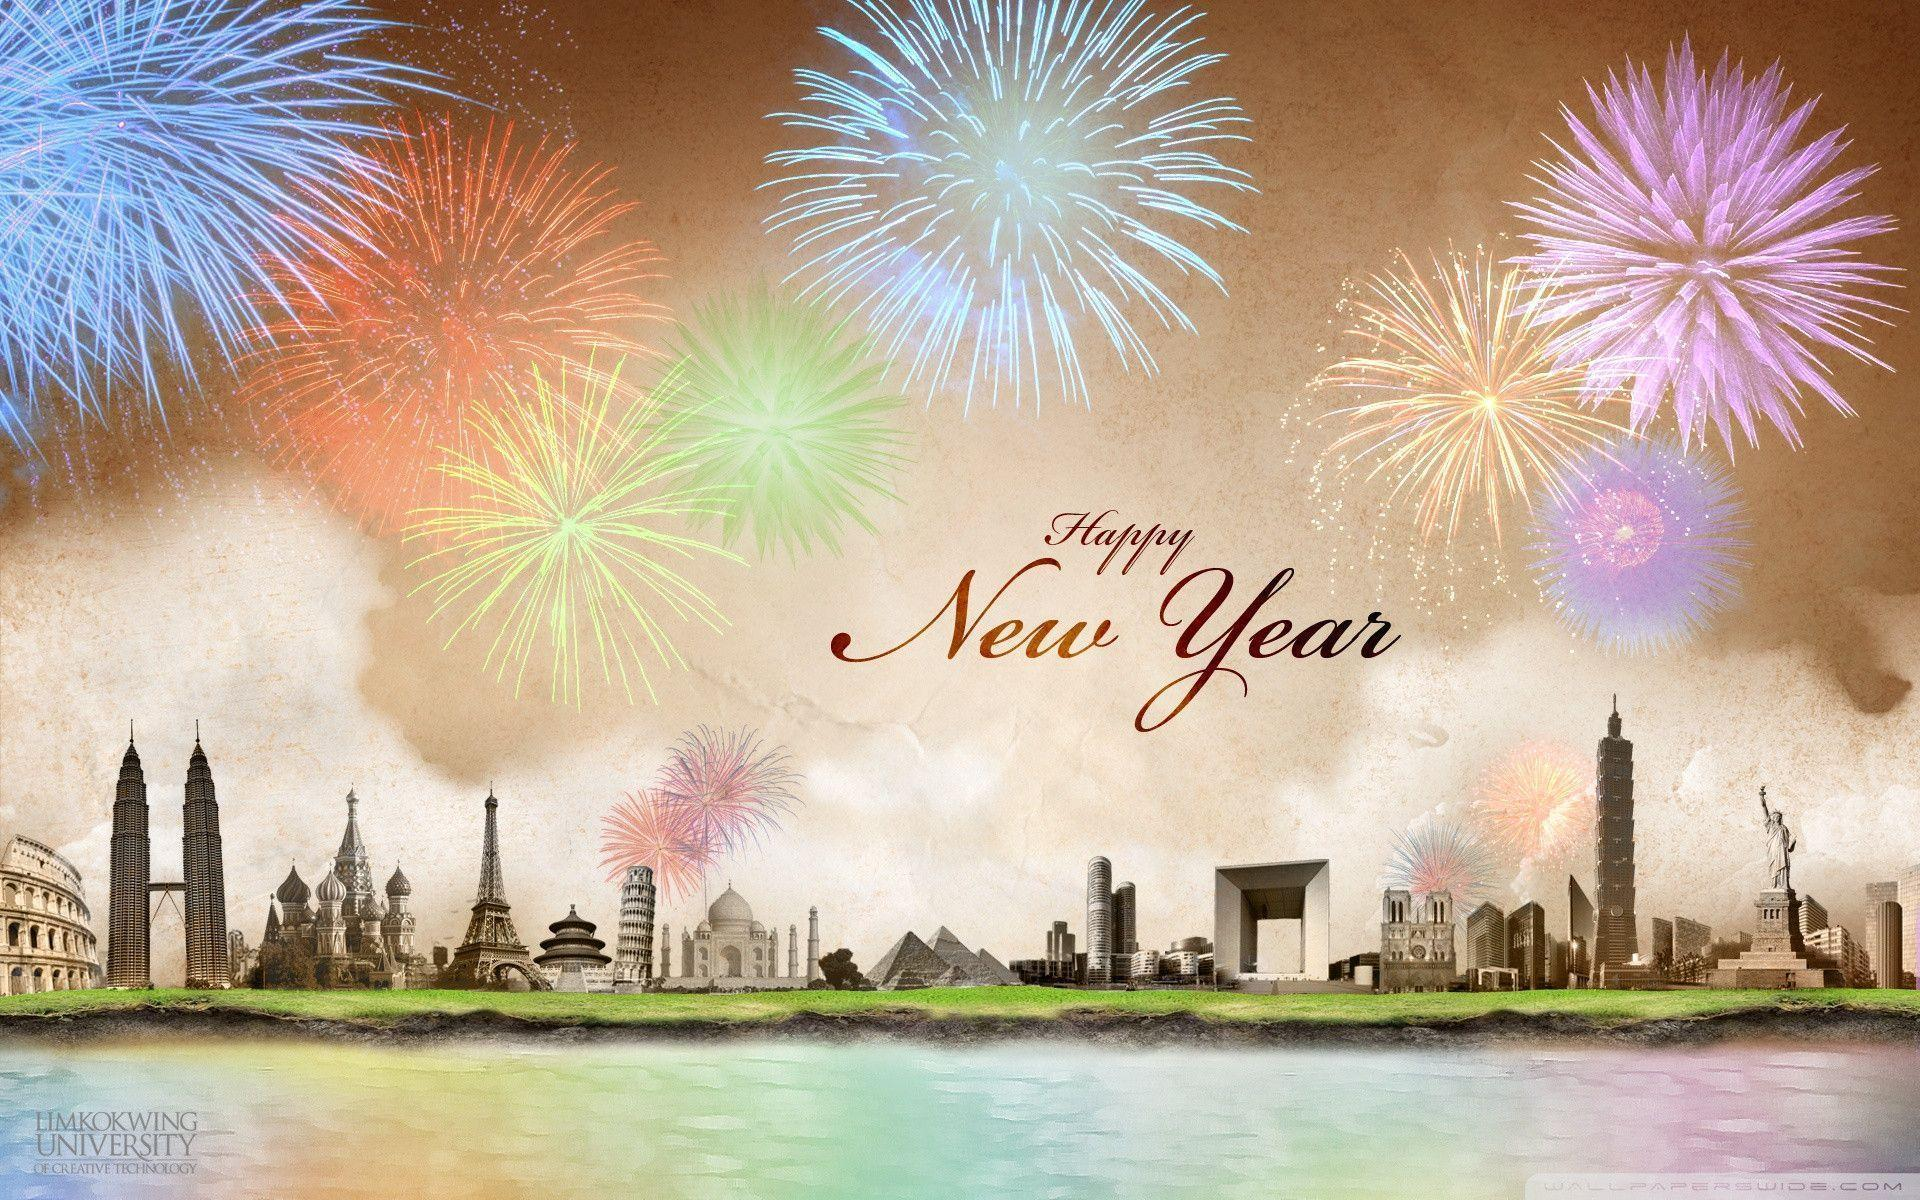 happy new year wallpaper hd download free 1